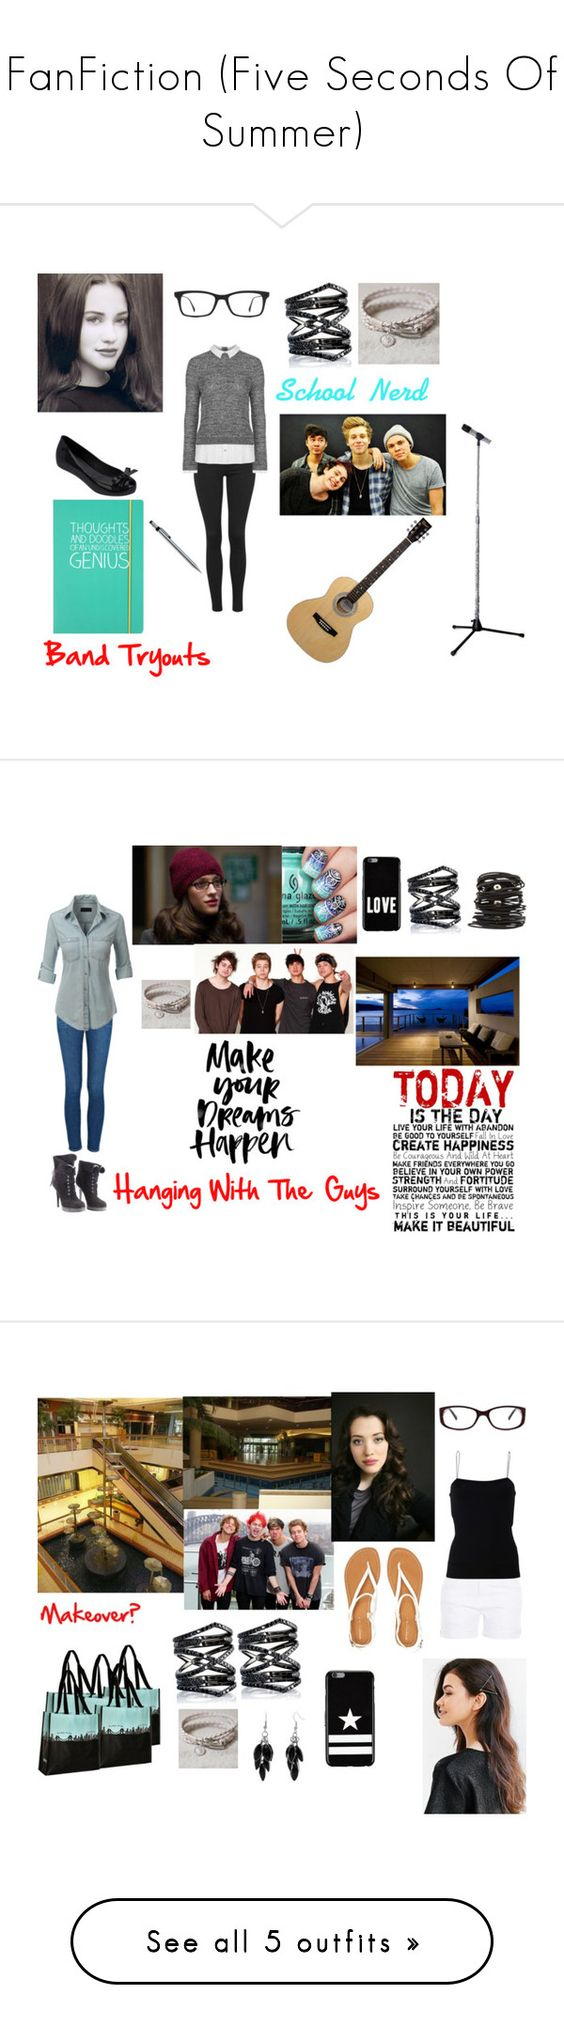 """""""FanFiction (Five Seconds Of Summer)"""" by mundca ❤ liked on Polyvore featuring Topshop, Melissa, Happy Jackson, Ray-Ban, Eva Fehren, AG Adriano Goldschmied, Frame Denim, LE3NO, Giuseppe Zanotti and Wet Seal"""